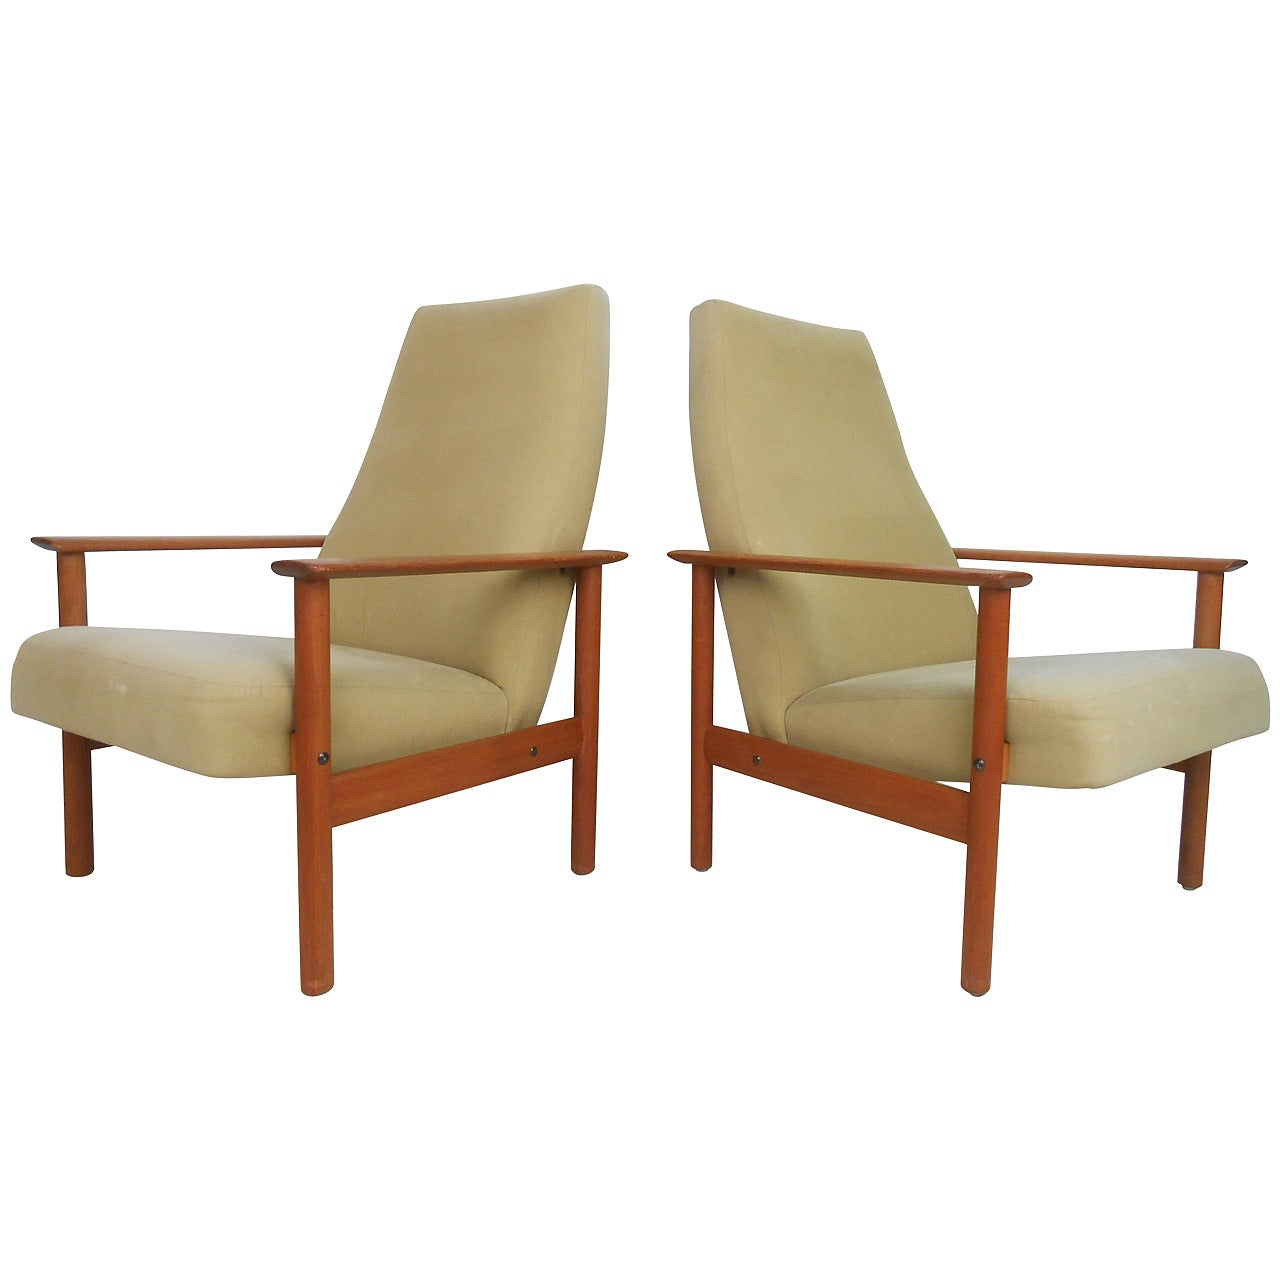 Pair of Mid-Century Modern Folke Ohlsson Style Lounge Chairs